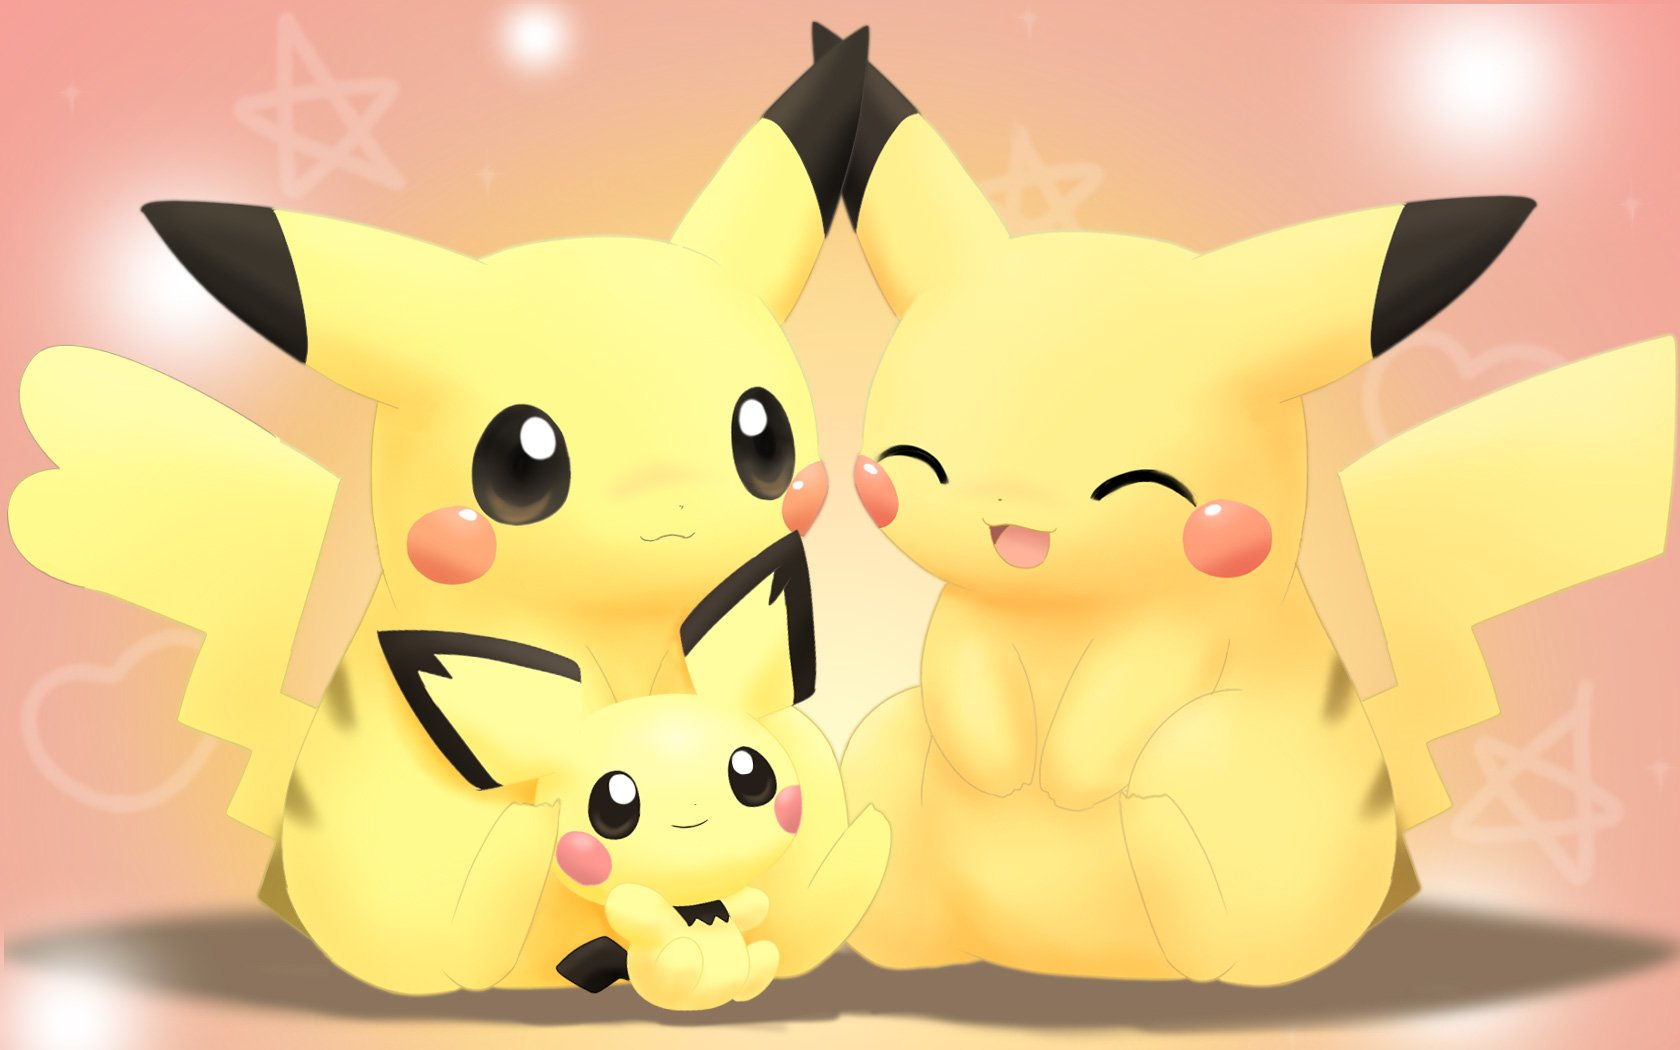 Video Game - Pokémon  Pikachu Pichu (Pokémon) Cute Smile Wallpaper